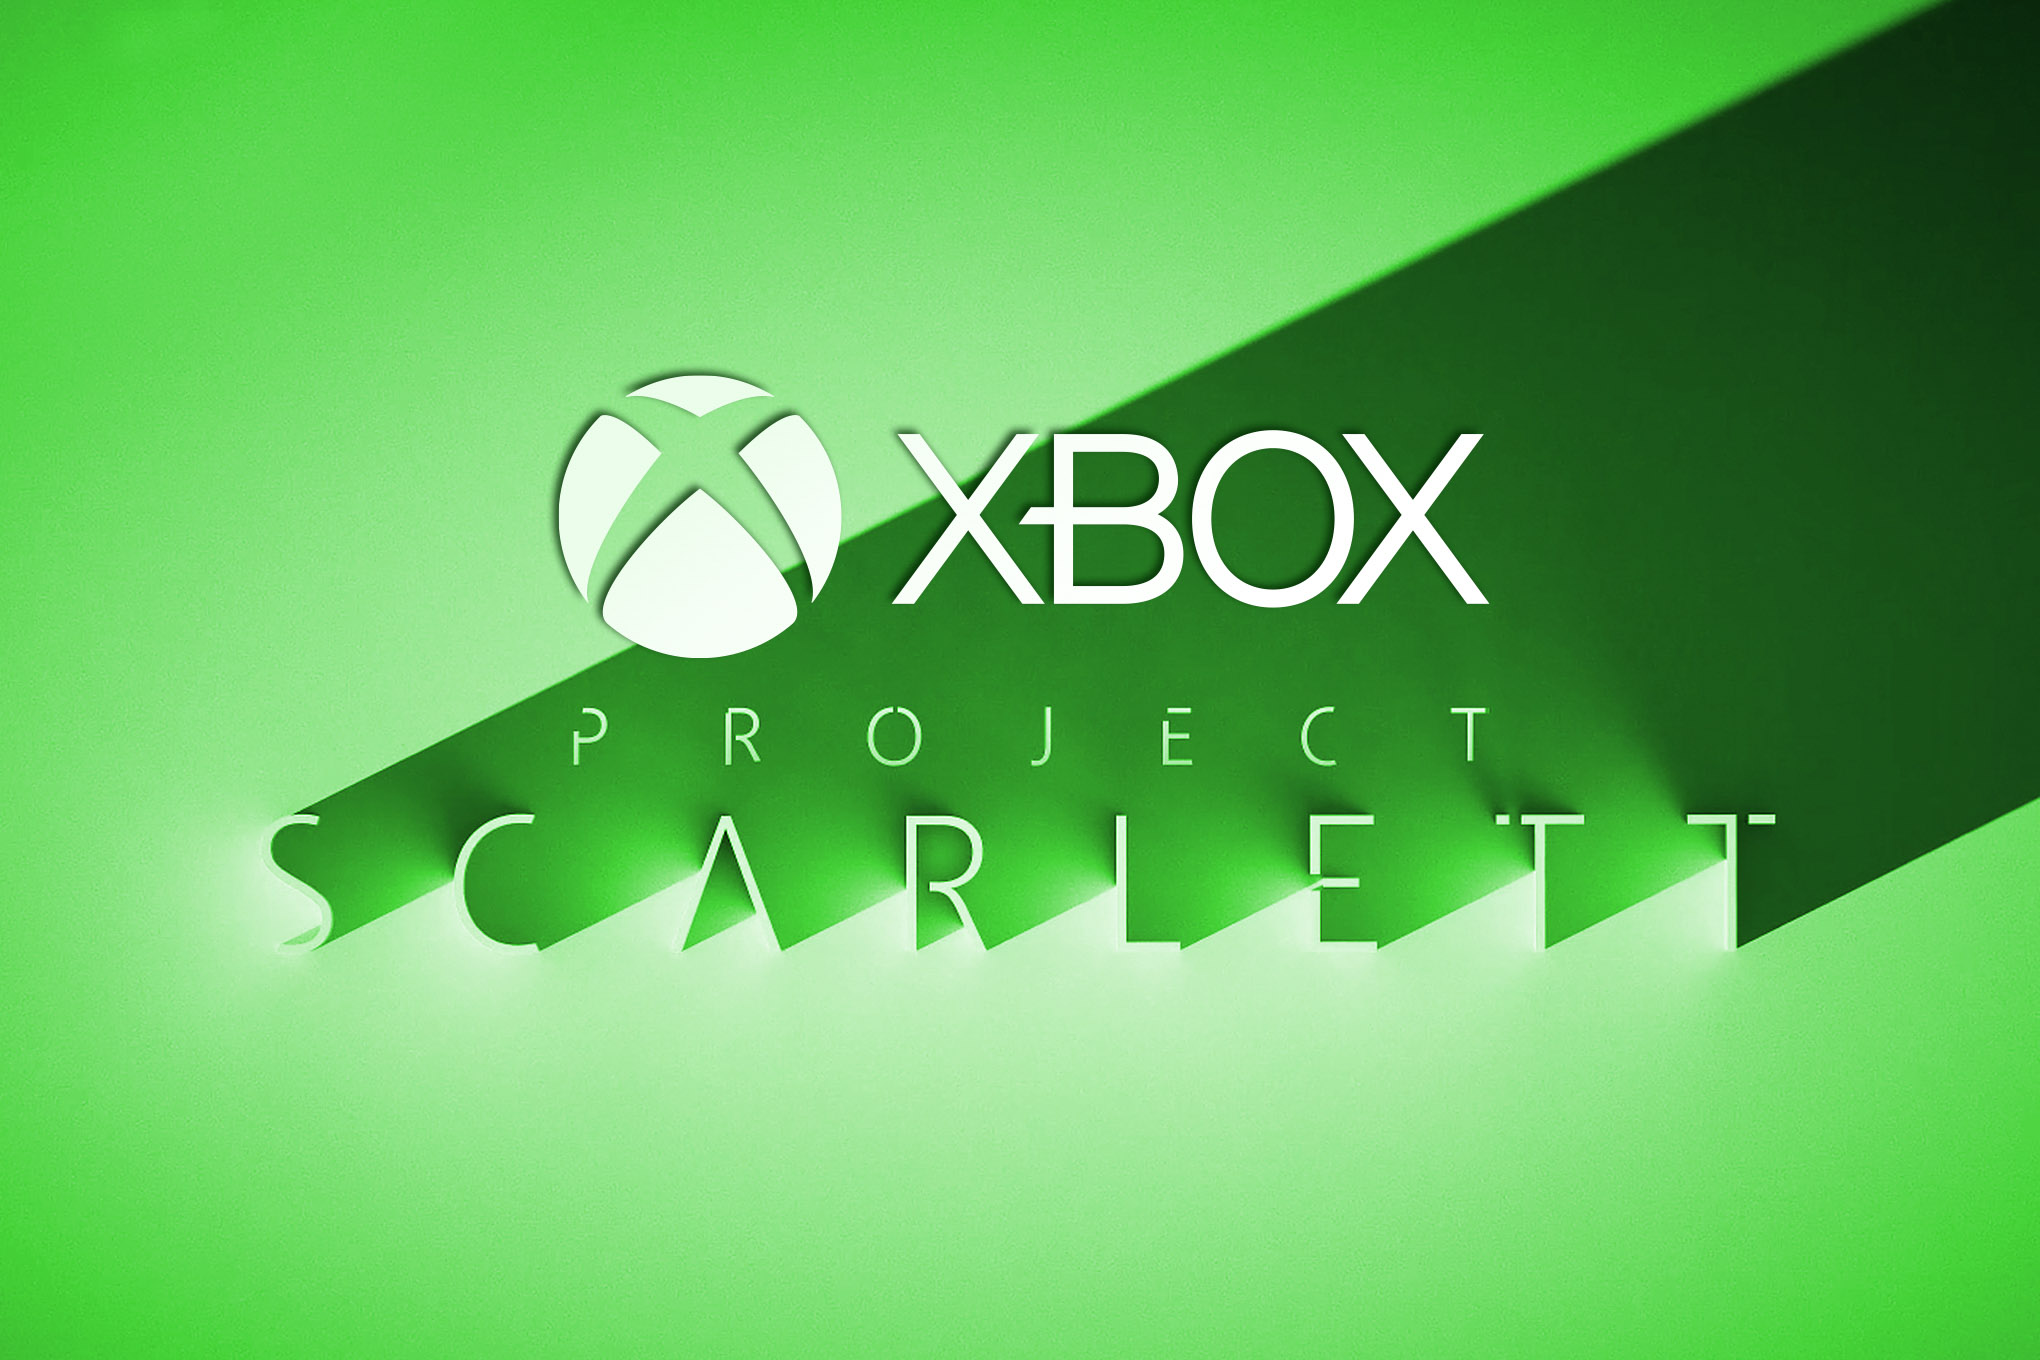 Project Scarlett: What we know about Microsoft's next Xbox